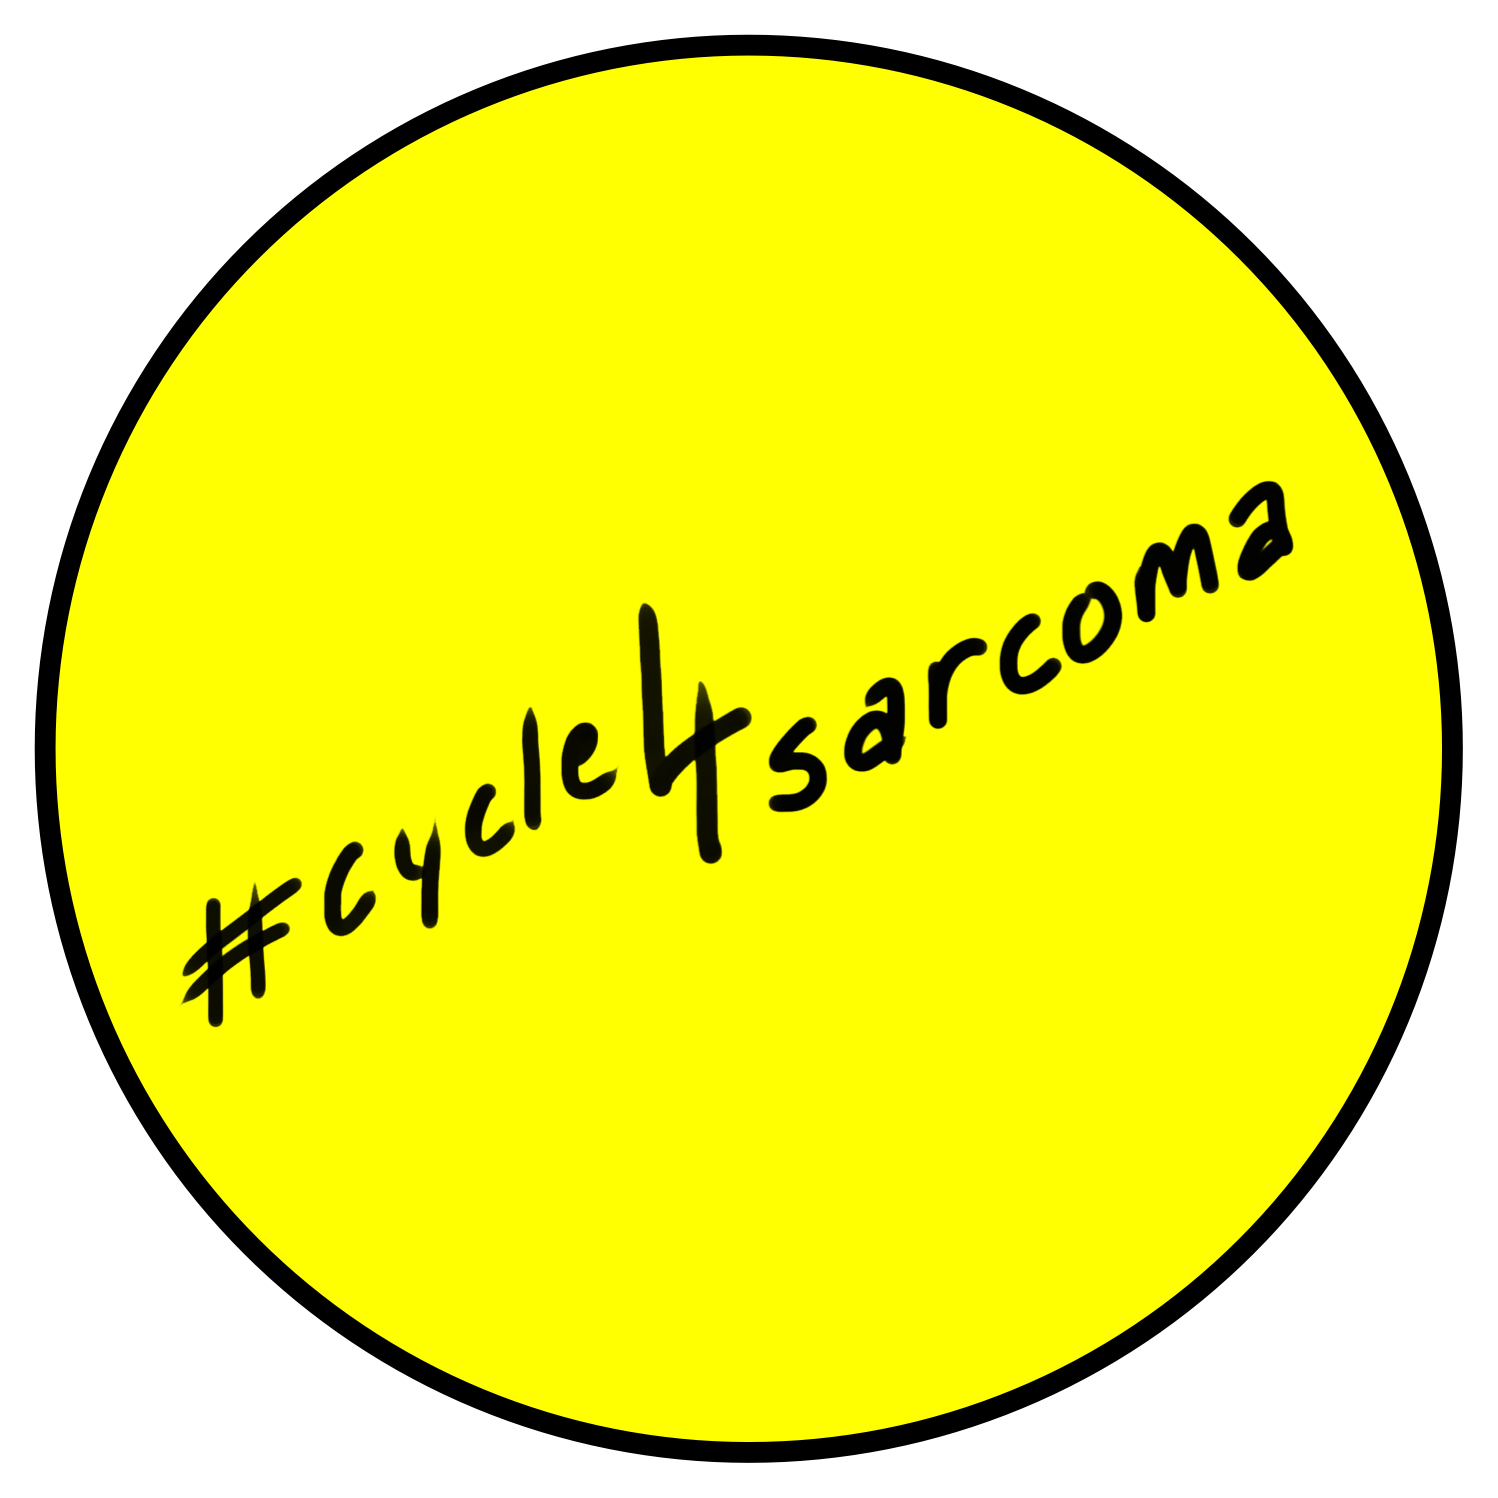 https://www.facebook.com/cycle4sarcoma/